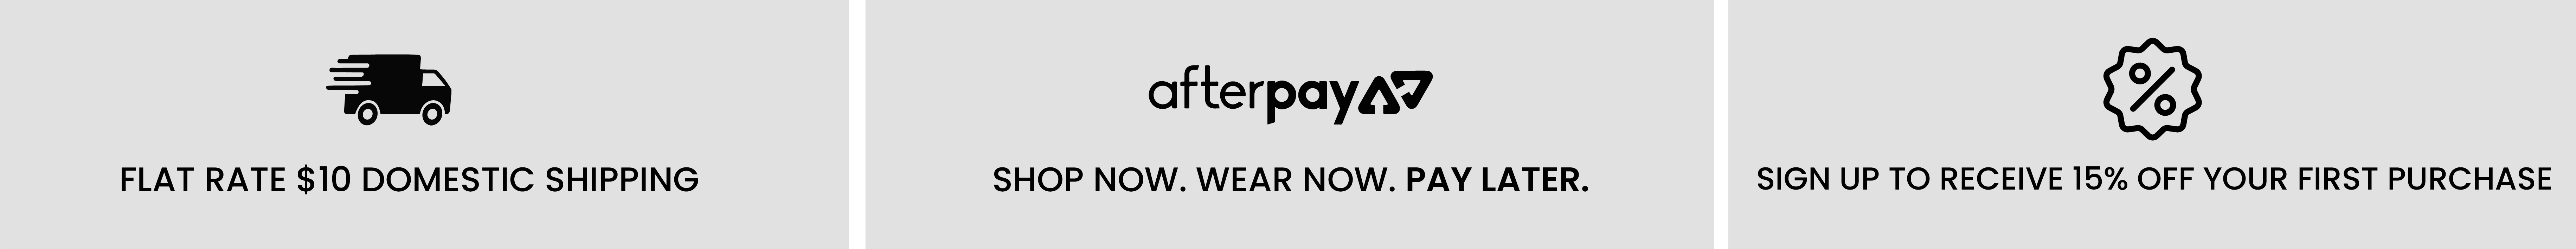 $10 Flat Rate Domestic Shipping | Pay with Afterpay | Sign up for 15% Off First Purchase